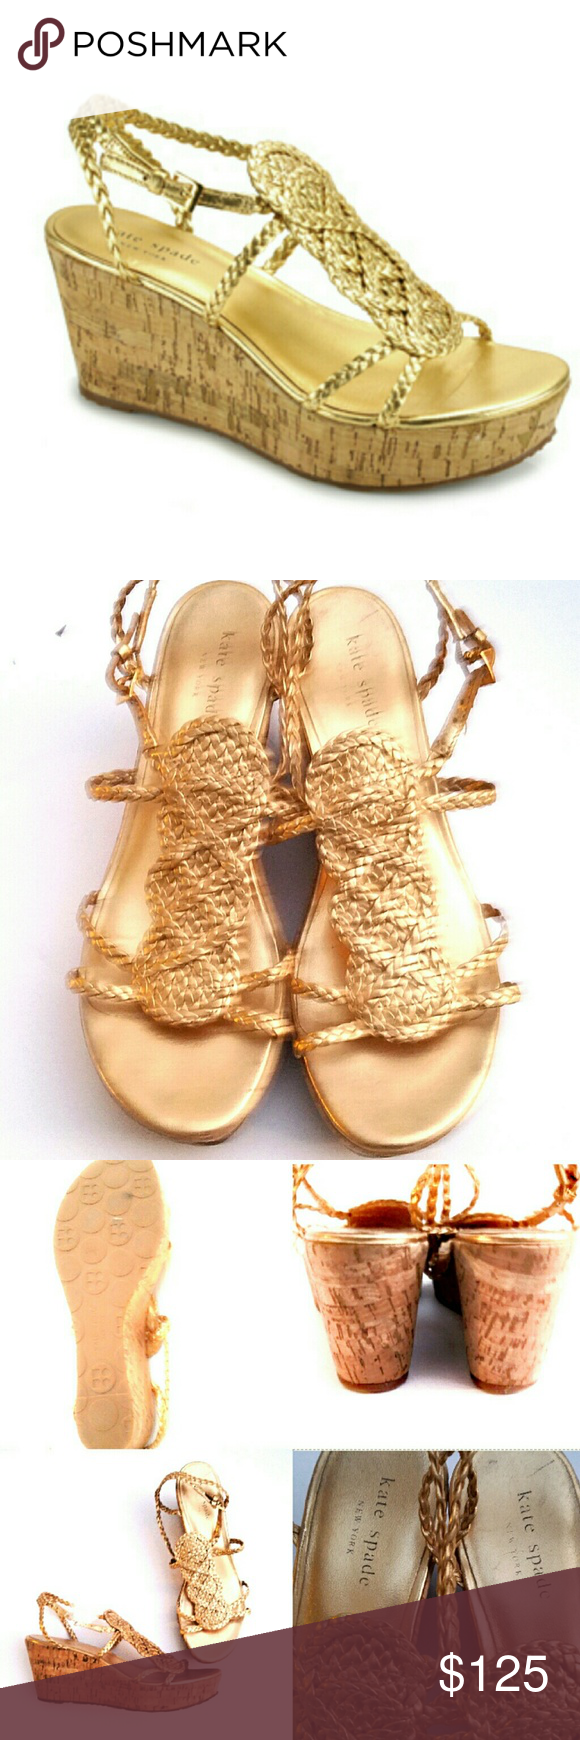 """Kate Spade Becca  Gold Leather Cork Wedges-9 Kate Spade Becca Gold Leather Cork Wedge Sandals. T- strap metallic gold sandal fashioned on comfortable and light cork wedge. 'Becca' is all set for warm weather looks. With Braided metallic leather upper, Leather lining, 1 1/4"""" front platform, a 3"""" high cork wedge, Adjustable buckle at ankle with gold buckle, and a Rubber sole, these shoes emanate class and are filled with comfort at the same time. Size 9. Excellent condition. kate spade Shoes…"""